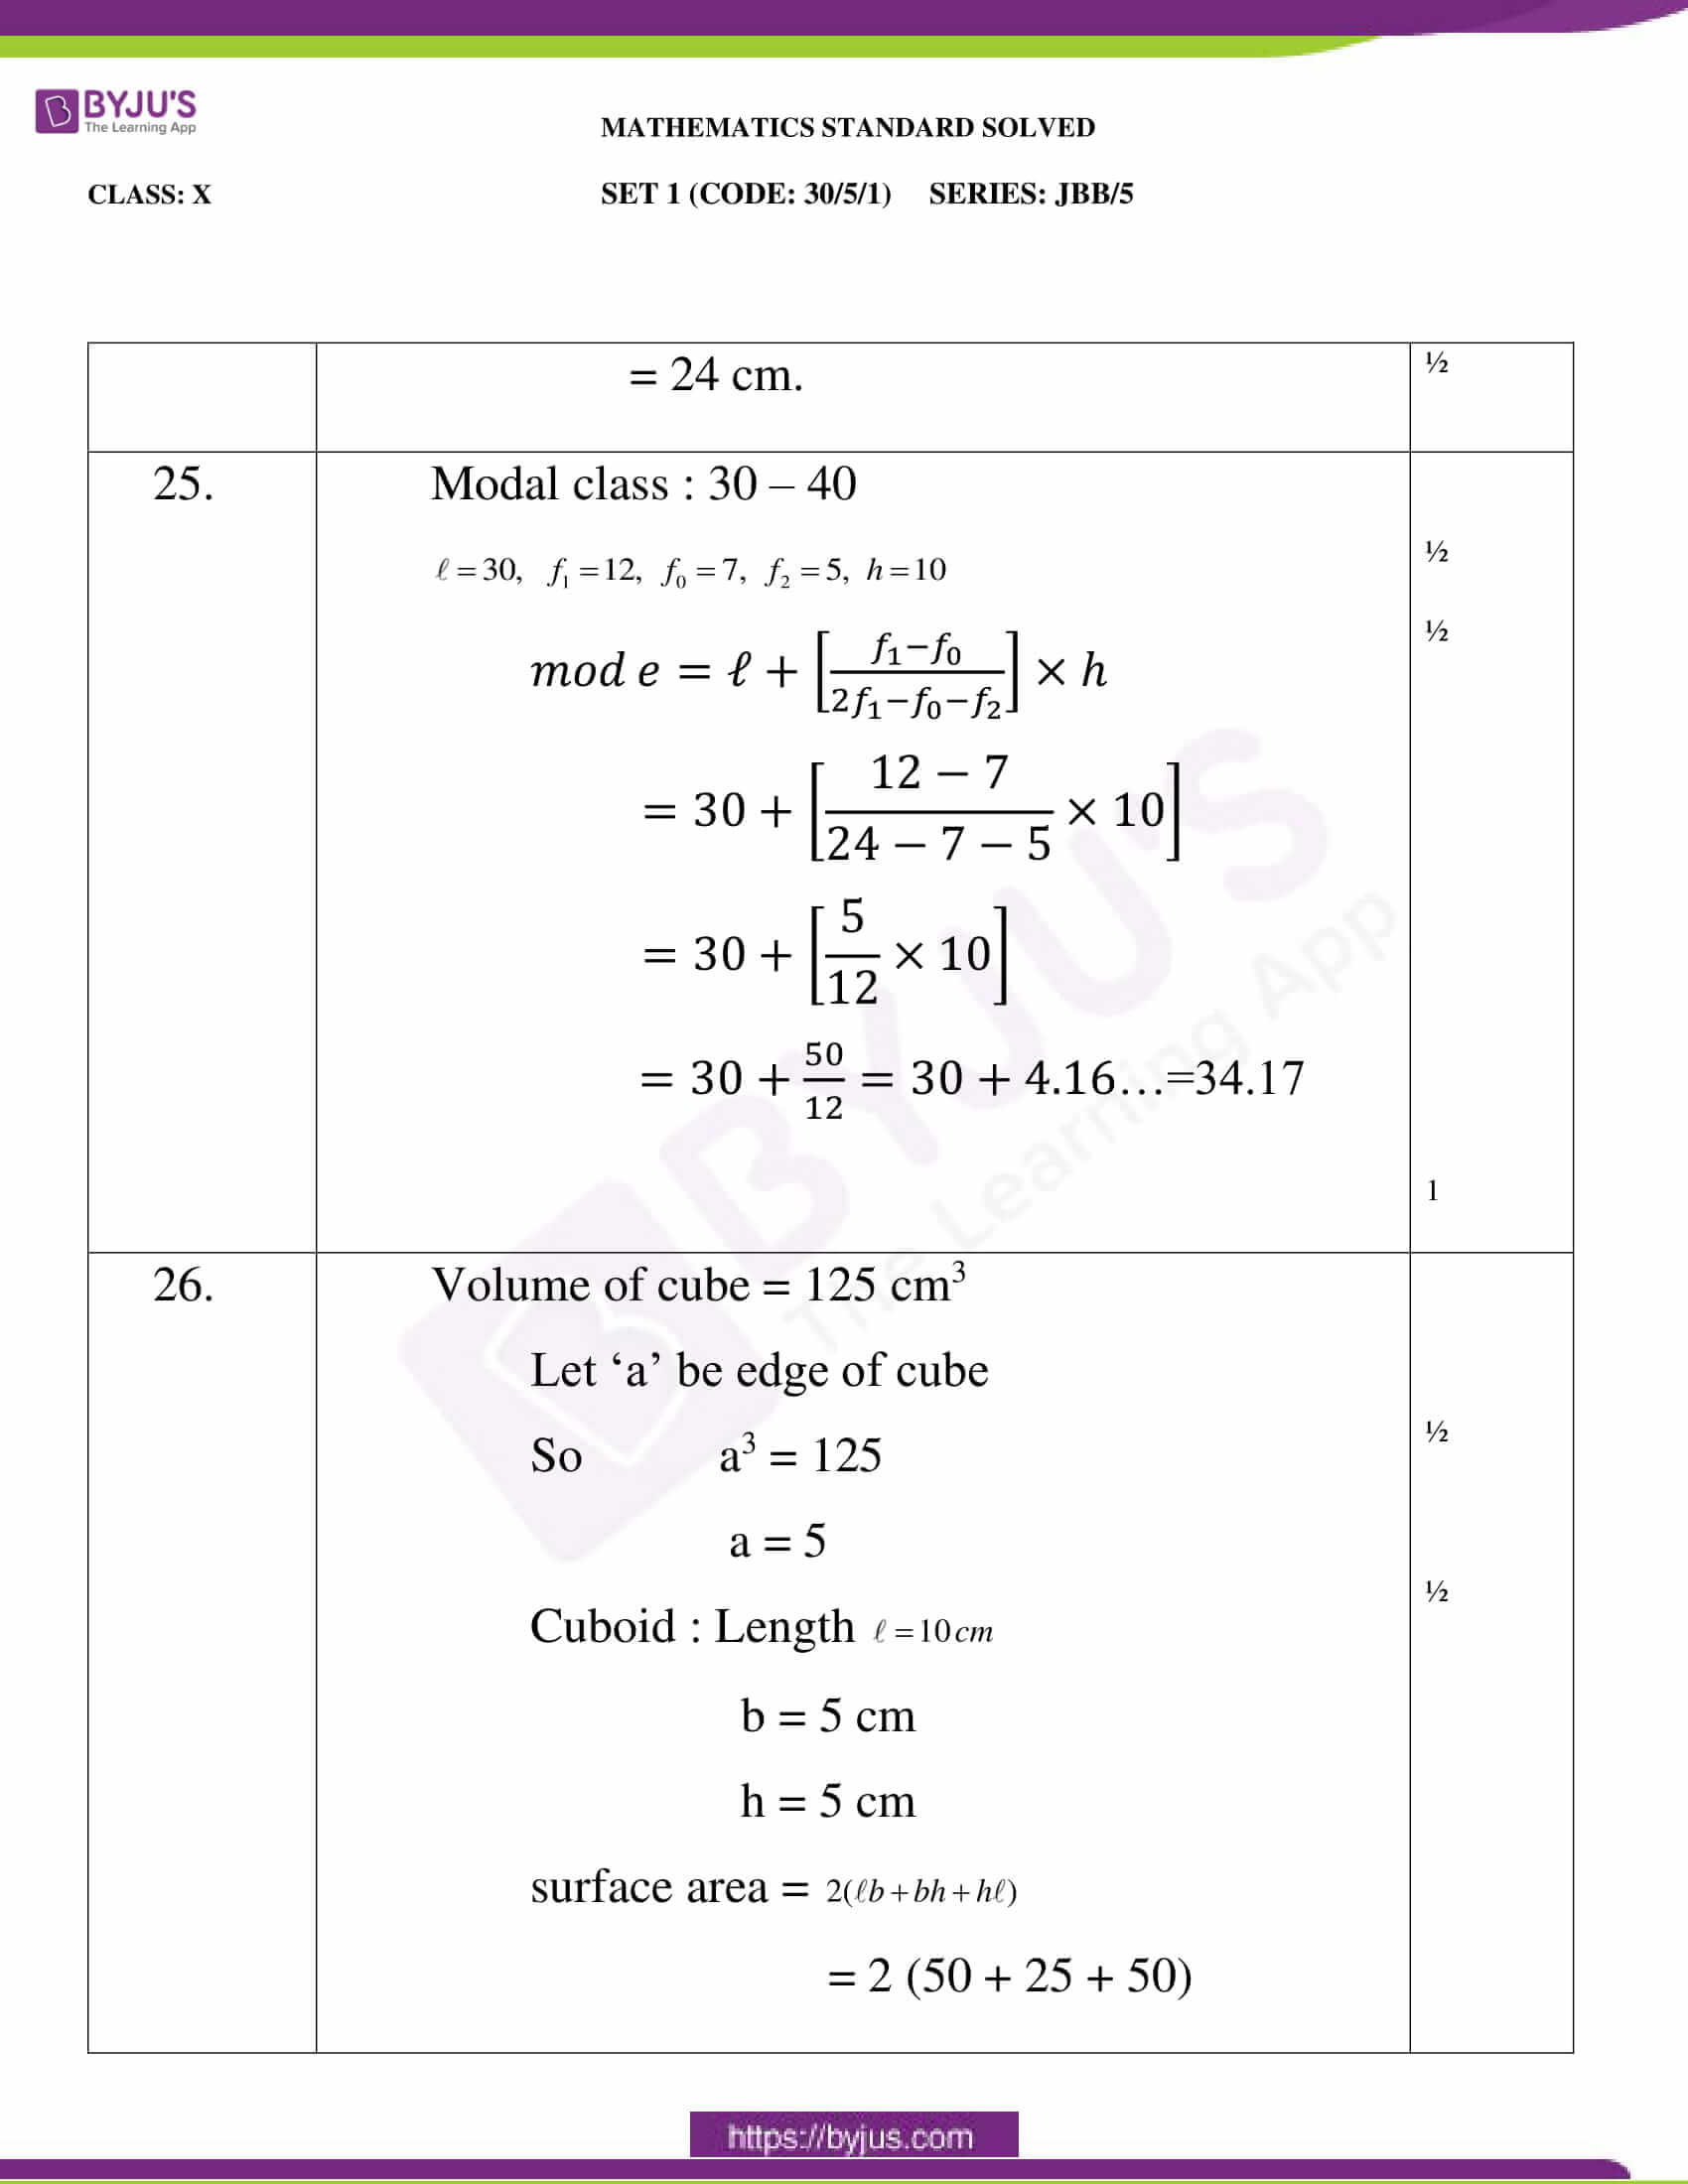 cbse class 10 maths standard question paper solution 2020 set 1 07